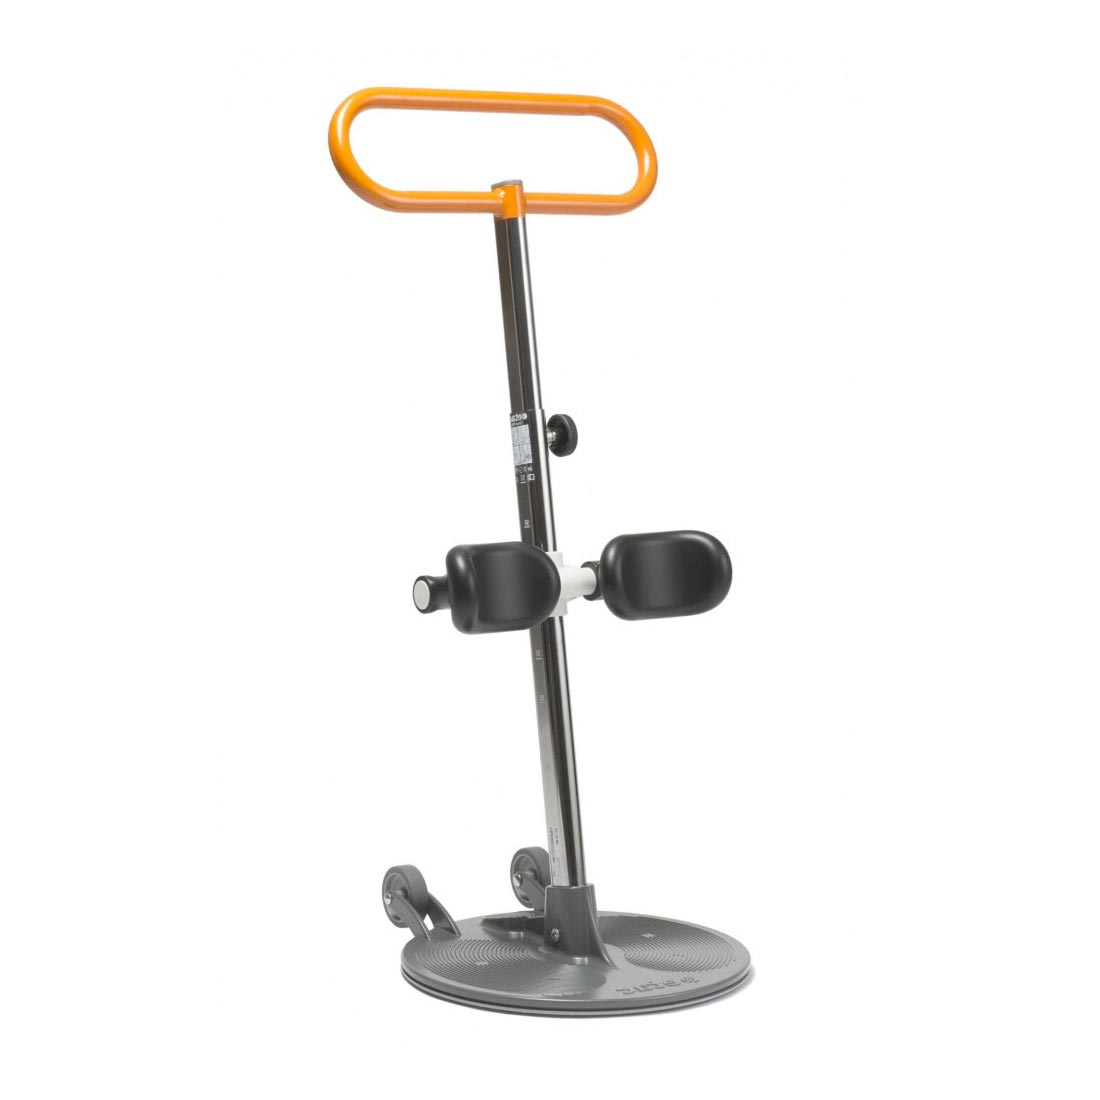 Etac Turner Pro sit to stand aid